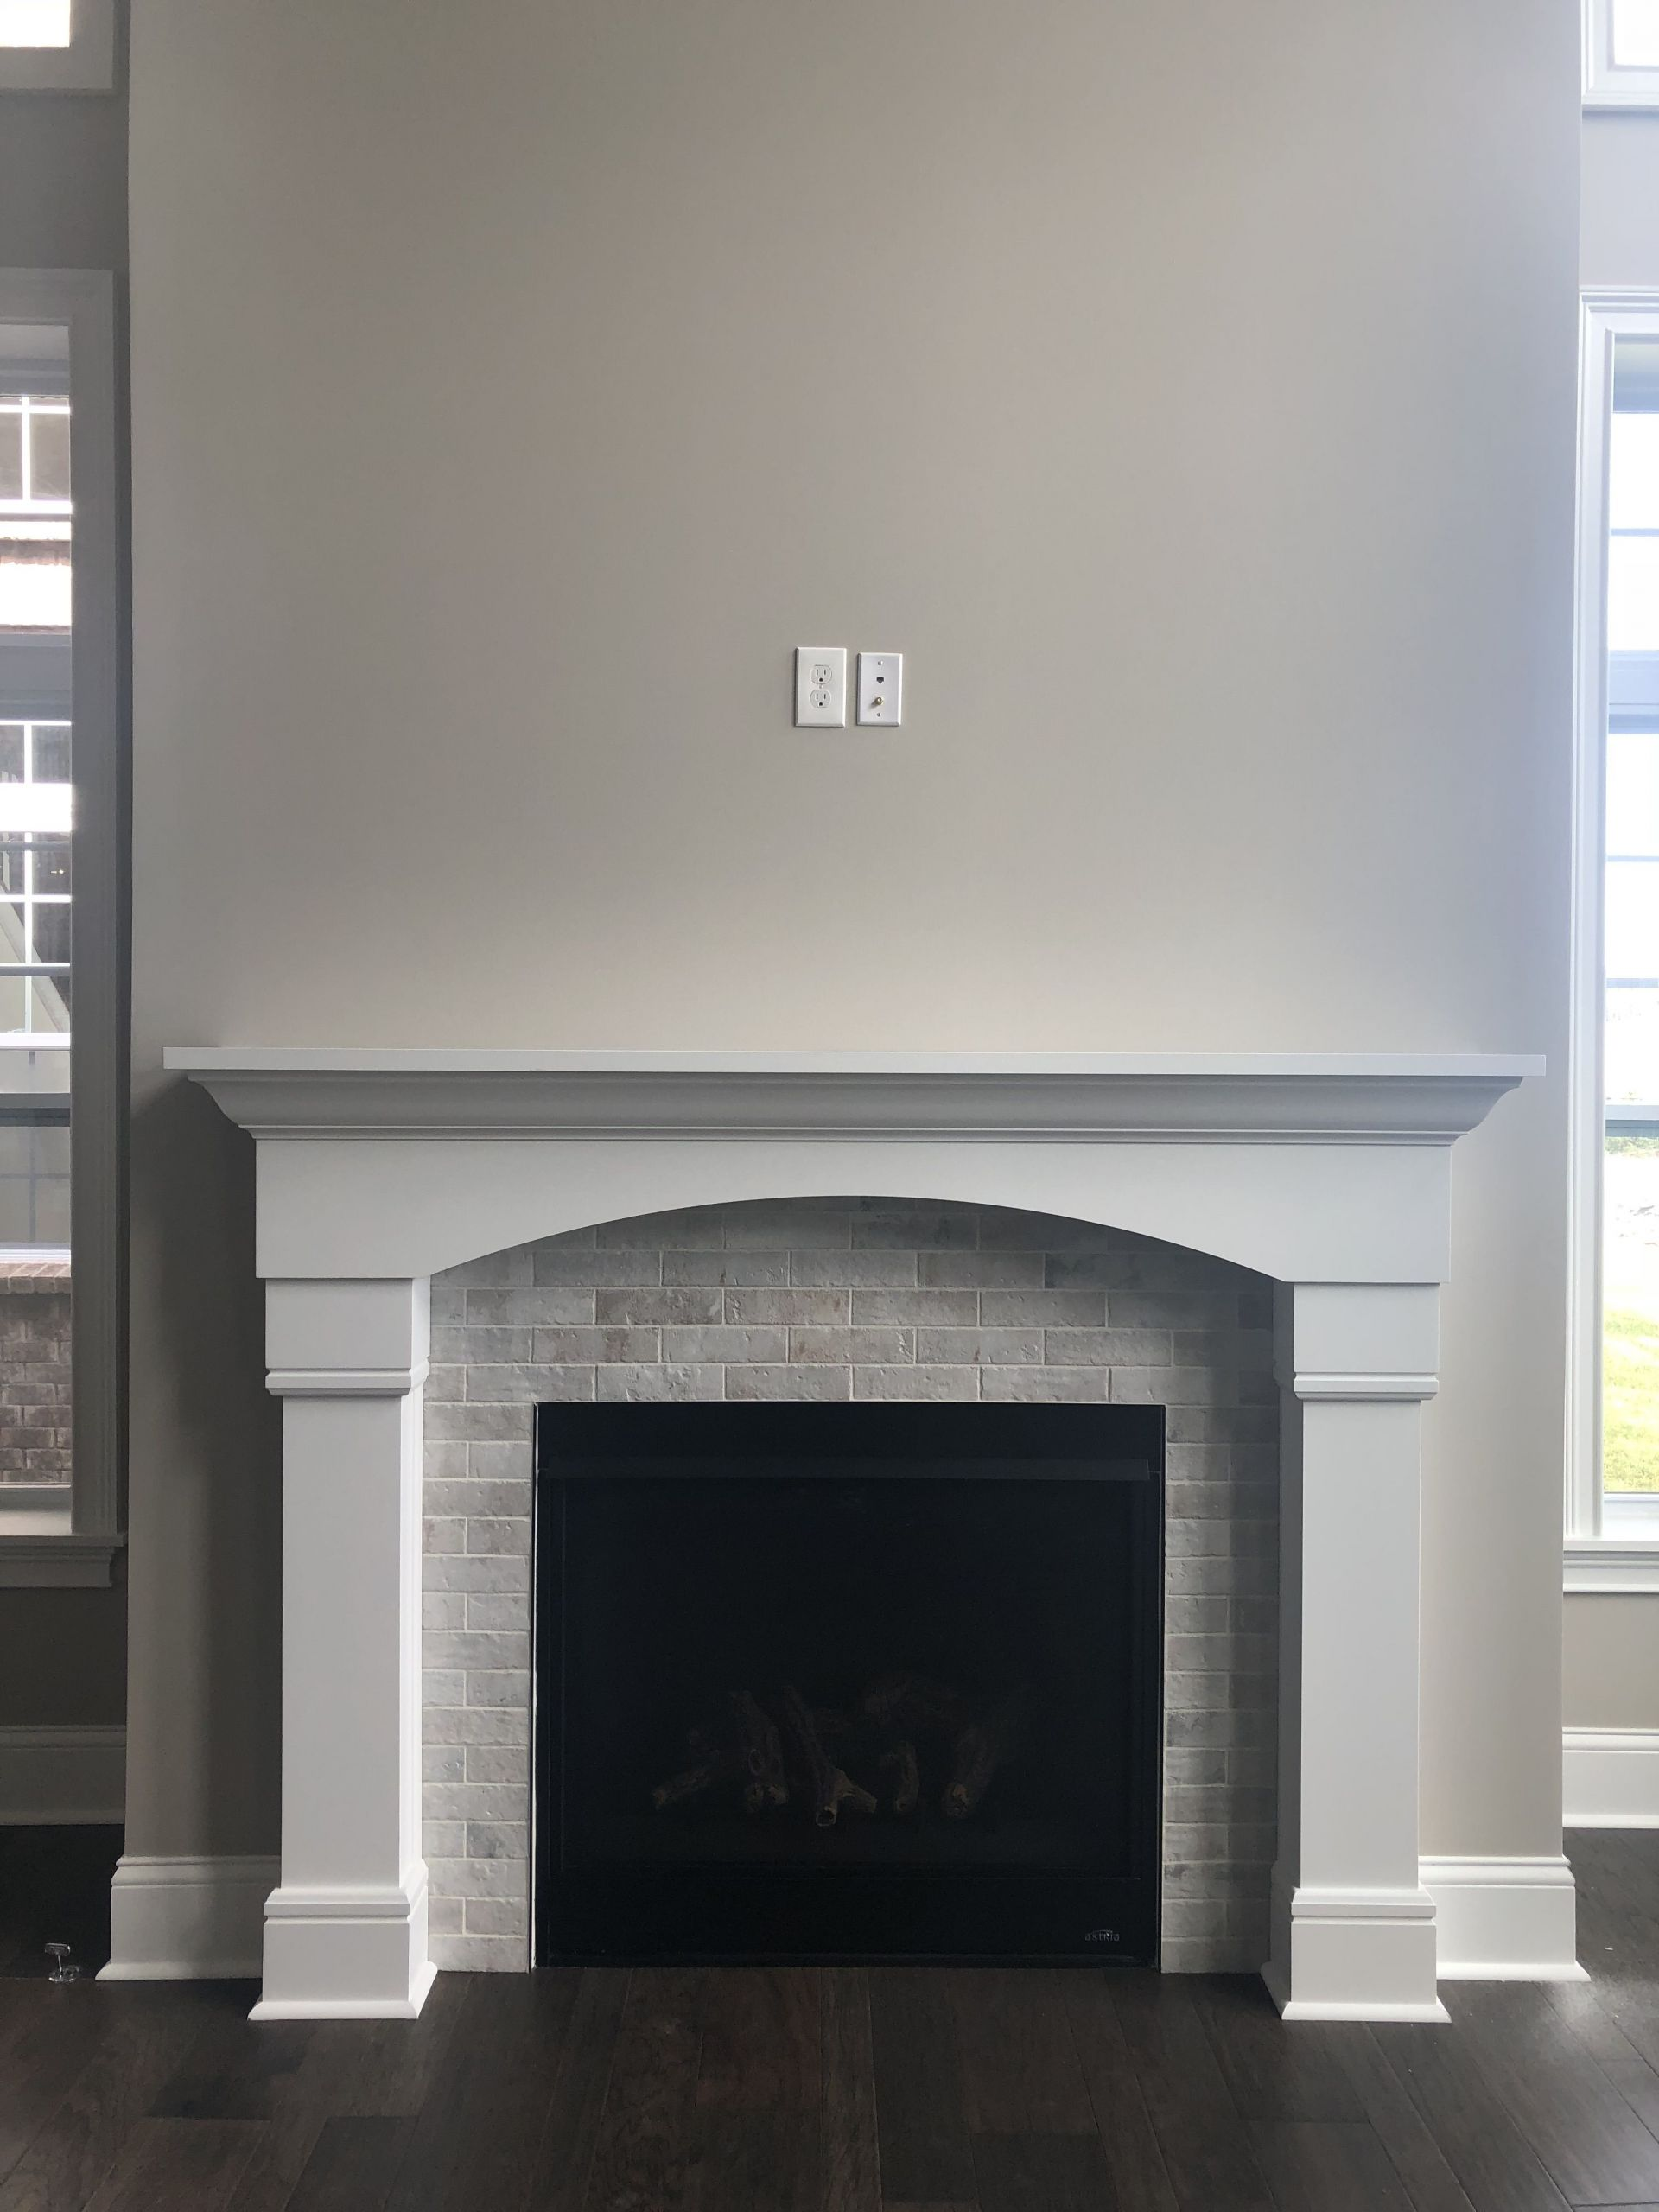 fireplace tile surround best of mantle 2 brickwork 2x8 studio tile surround of fireplace tile surround